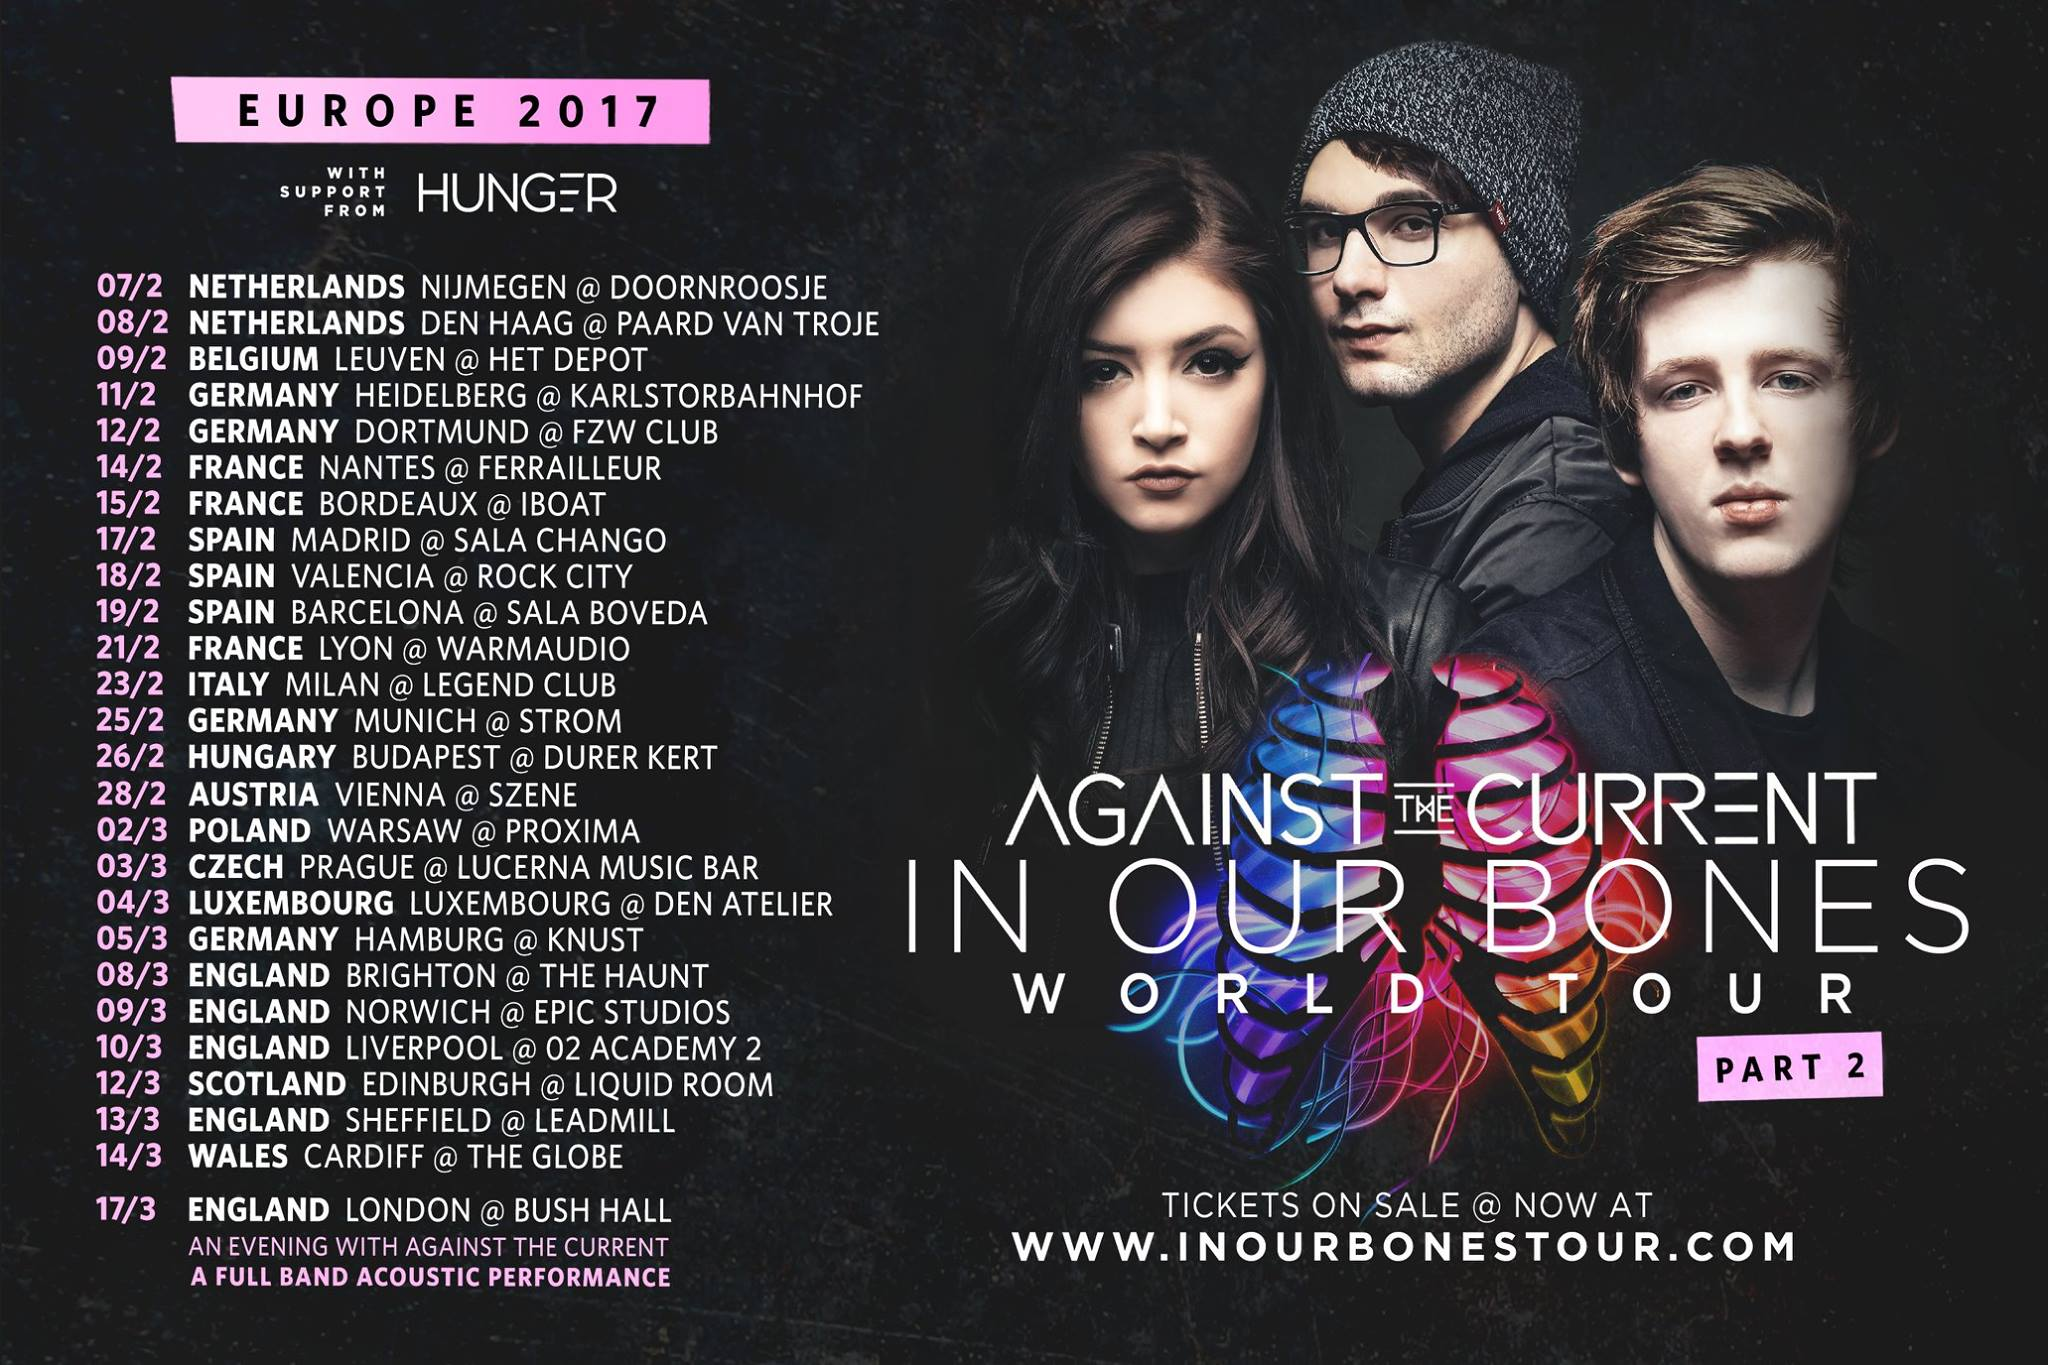 EUROPEAN TOUR WITH AGAINST THE CURRENT